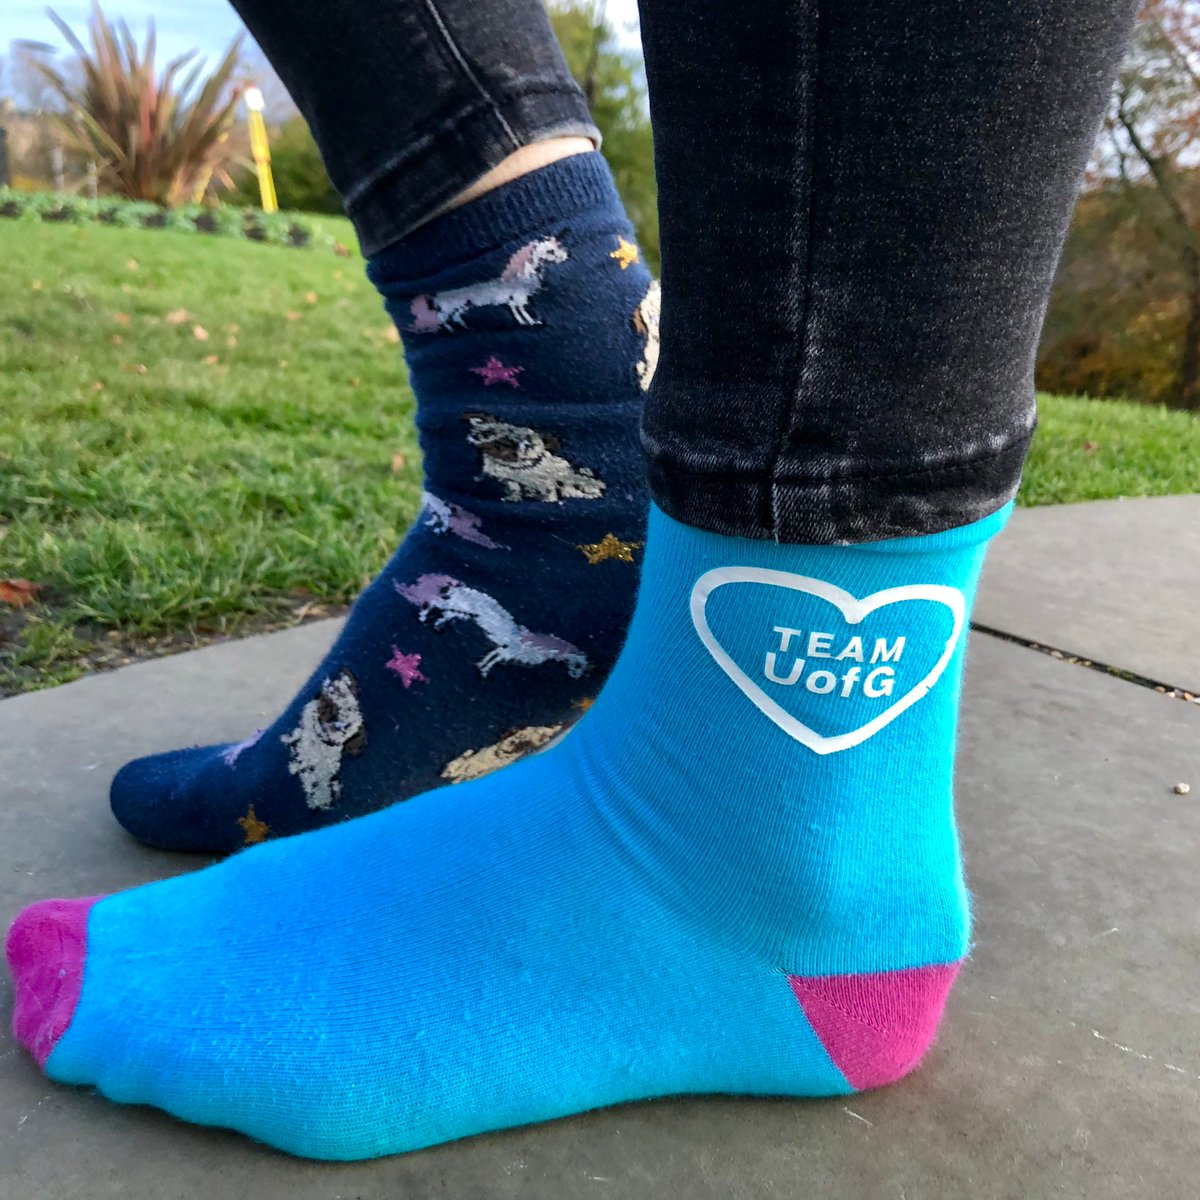 Rocking our odd socks with pride  and celebrating what makes everyone unique#OddSocksDay #AntiBullyingWeek #TeamUofG <br>http://pic.twitter.com/afWaKROKAF